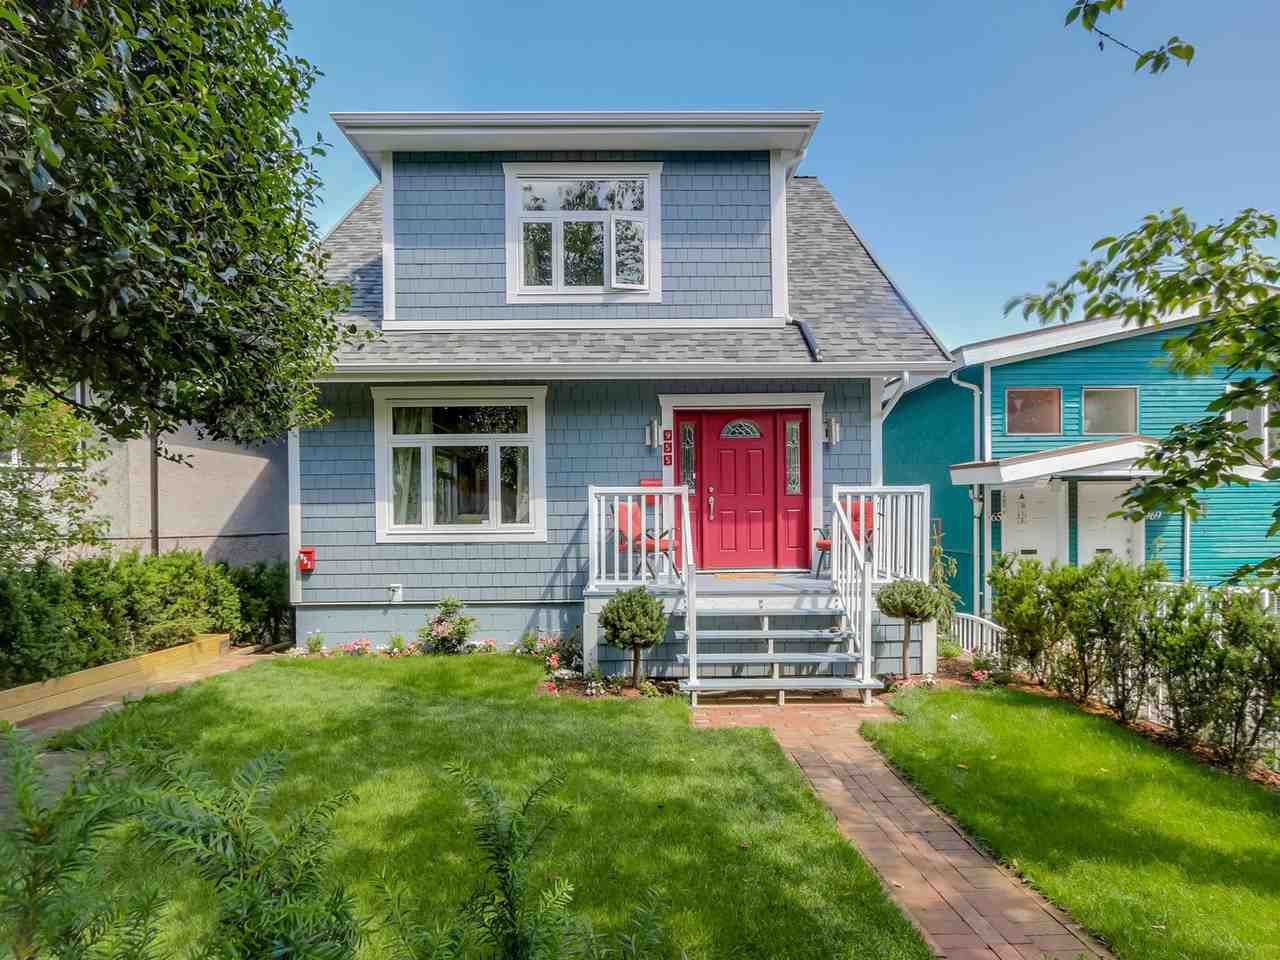 Main Photo: 955 E 10TH AVENUE in Vancouver: Mount Pleasant VE House for sale (Vancouver East)  : MLS®# R2074538